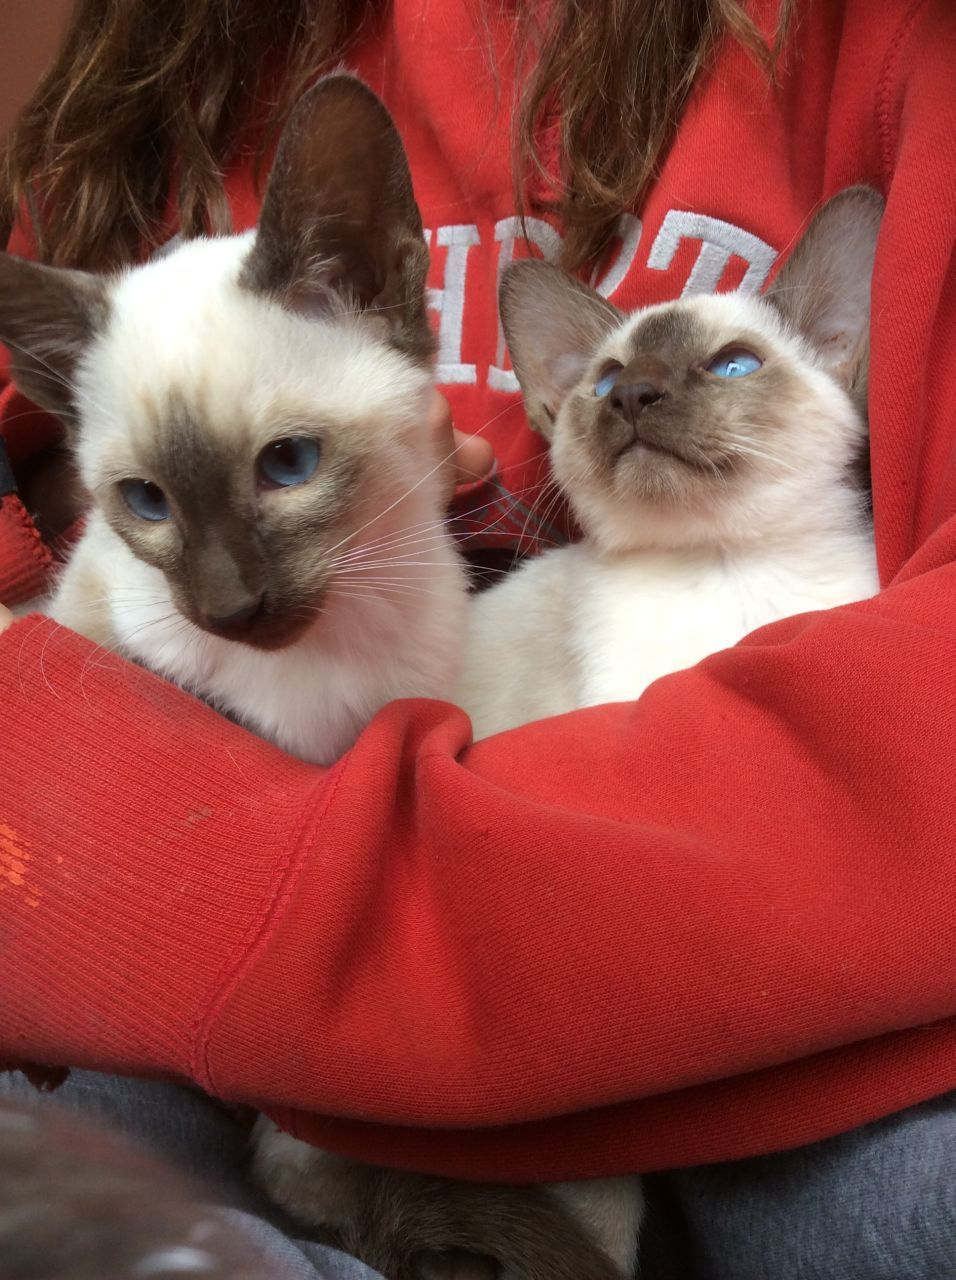 Choc Boys Seal Boys Fawn Boys Seal Girls Fully Vaccinated And Vet Checked Gccf Reg Non Active Girls Only Can Be Gccf Siamese Kittens Litter Training Kittens